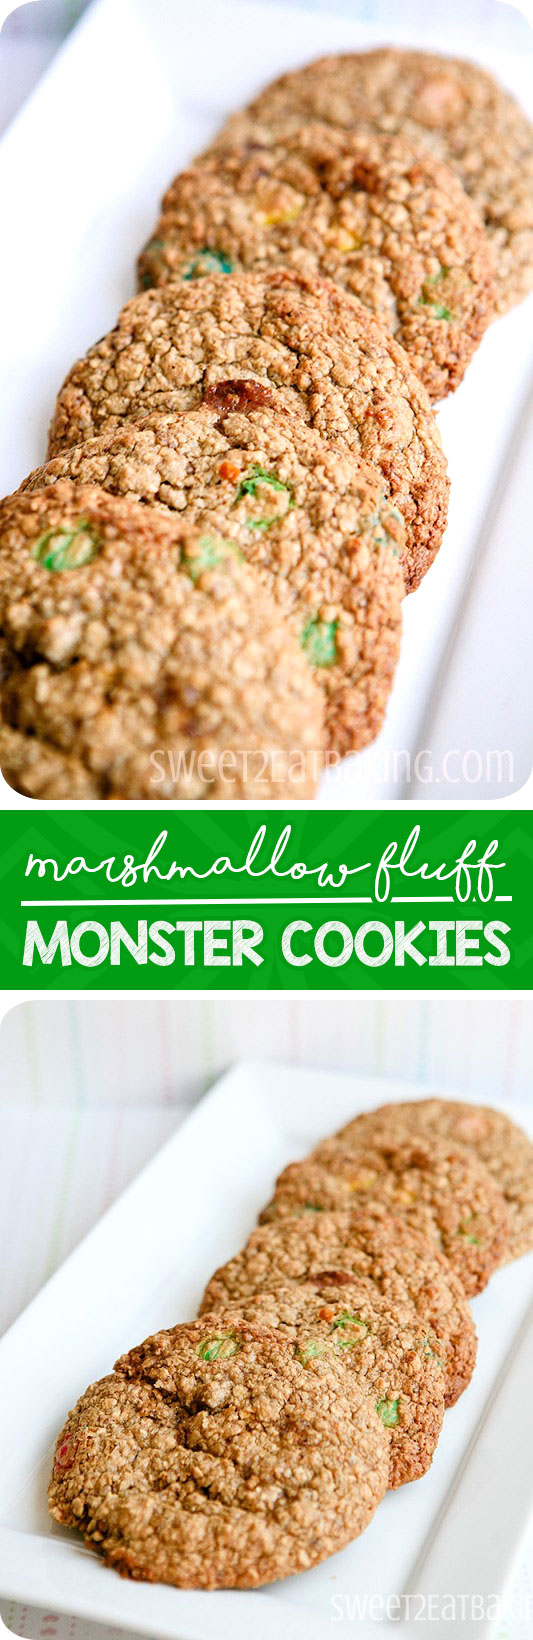 marshmallow-fluff-monster-cookies